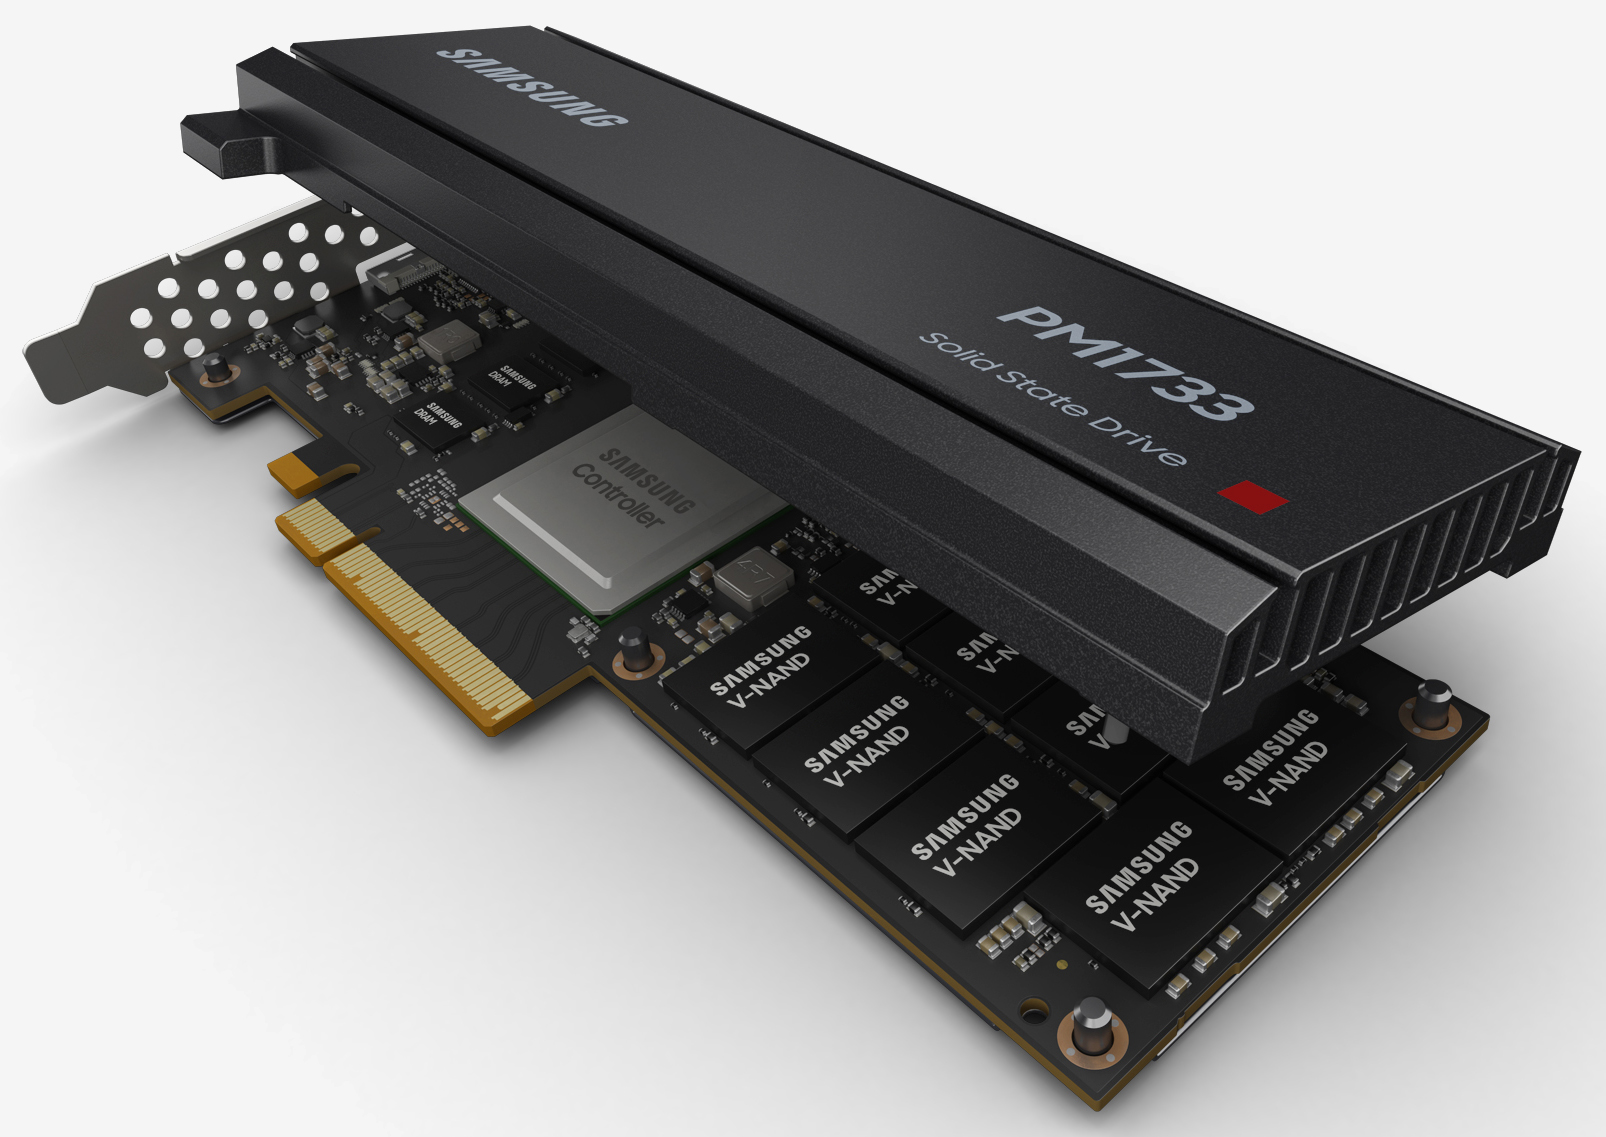 Samsung announces the PM1733 PCIe 4 0, the industry's highest